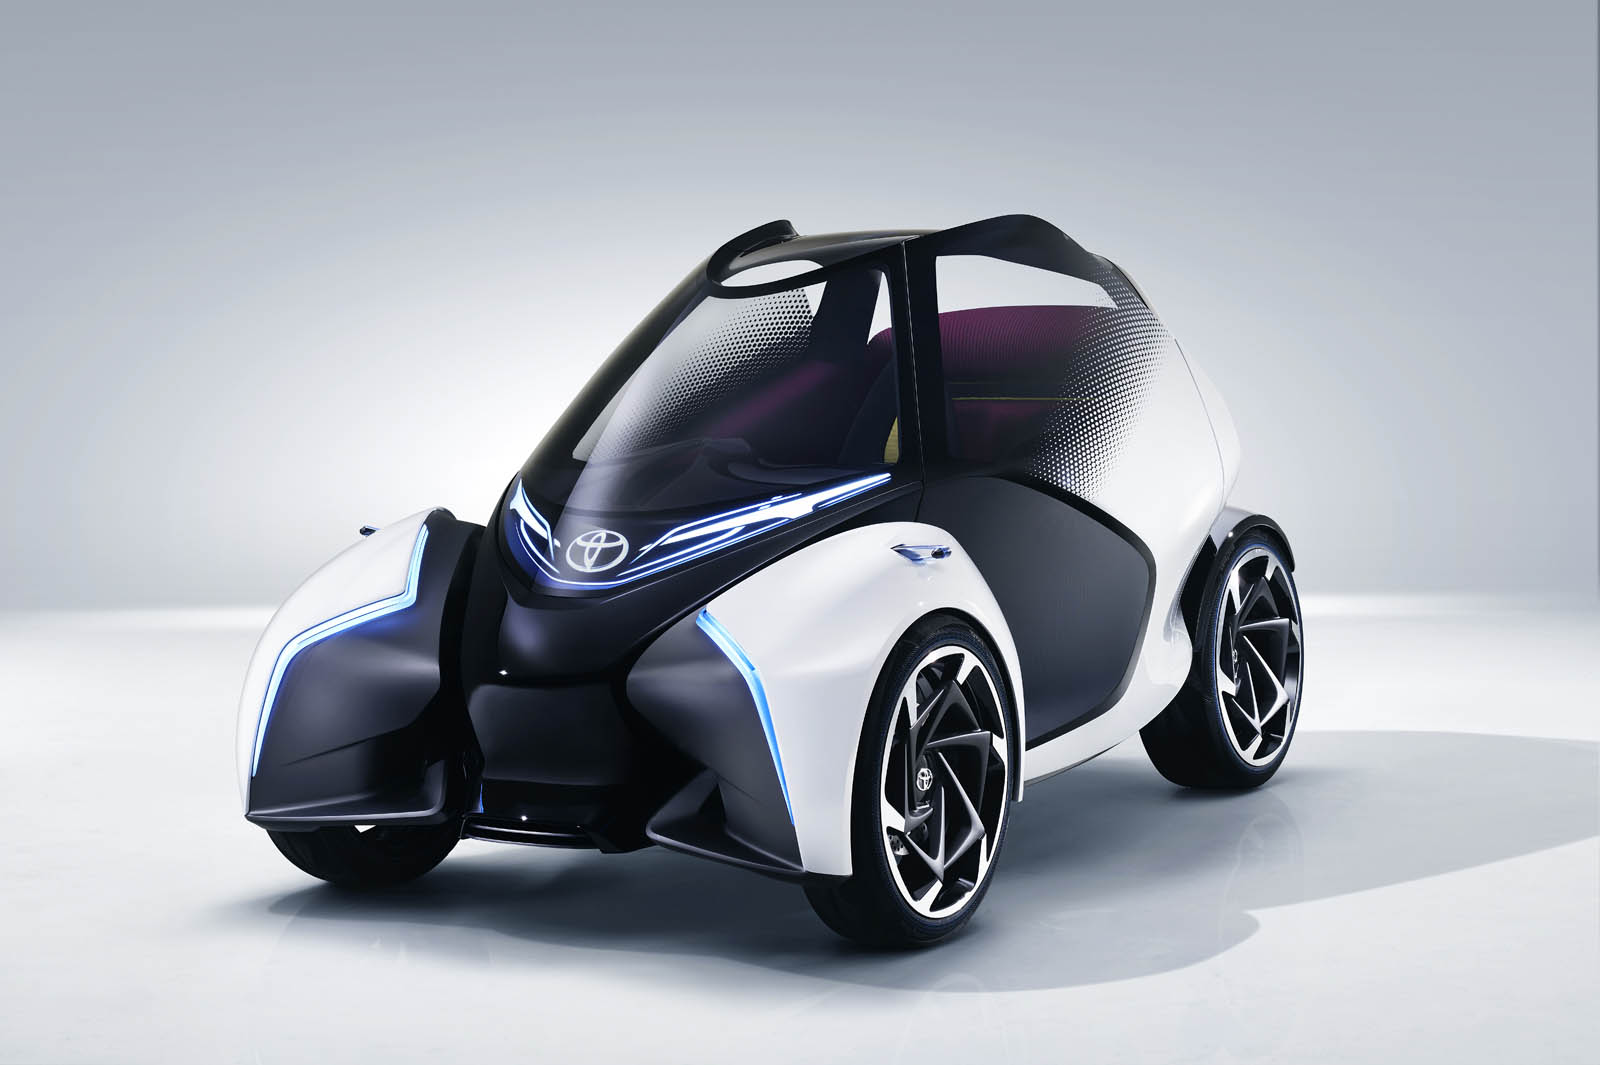 2017_Toyota_Concept_i-Tril_Static_02 copy